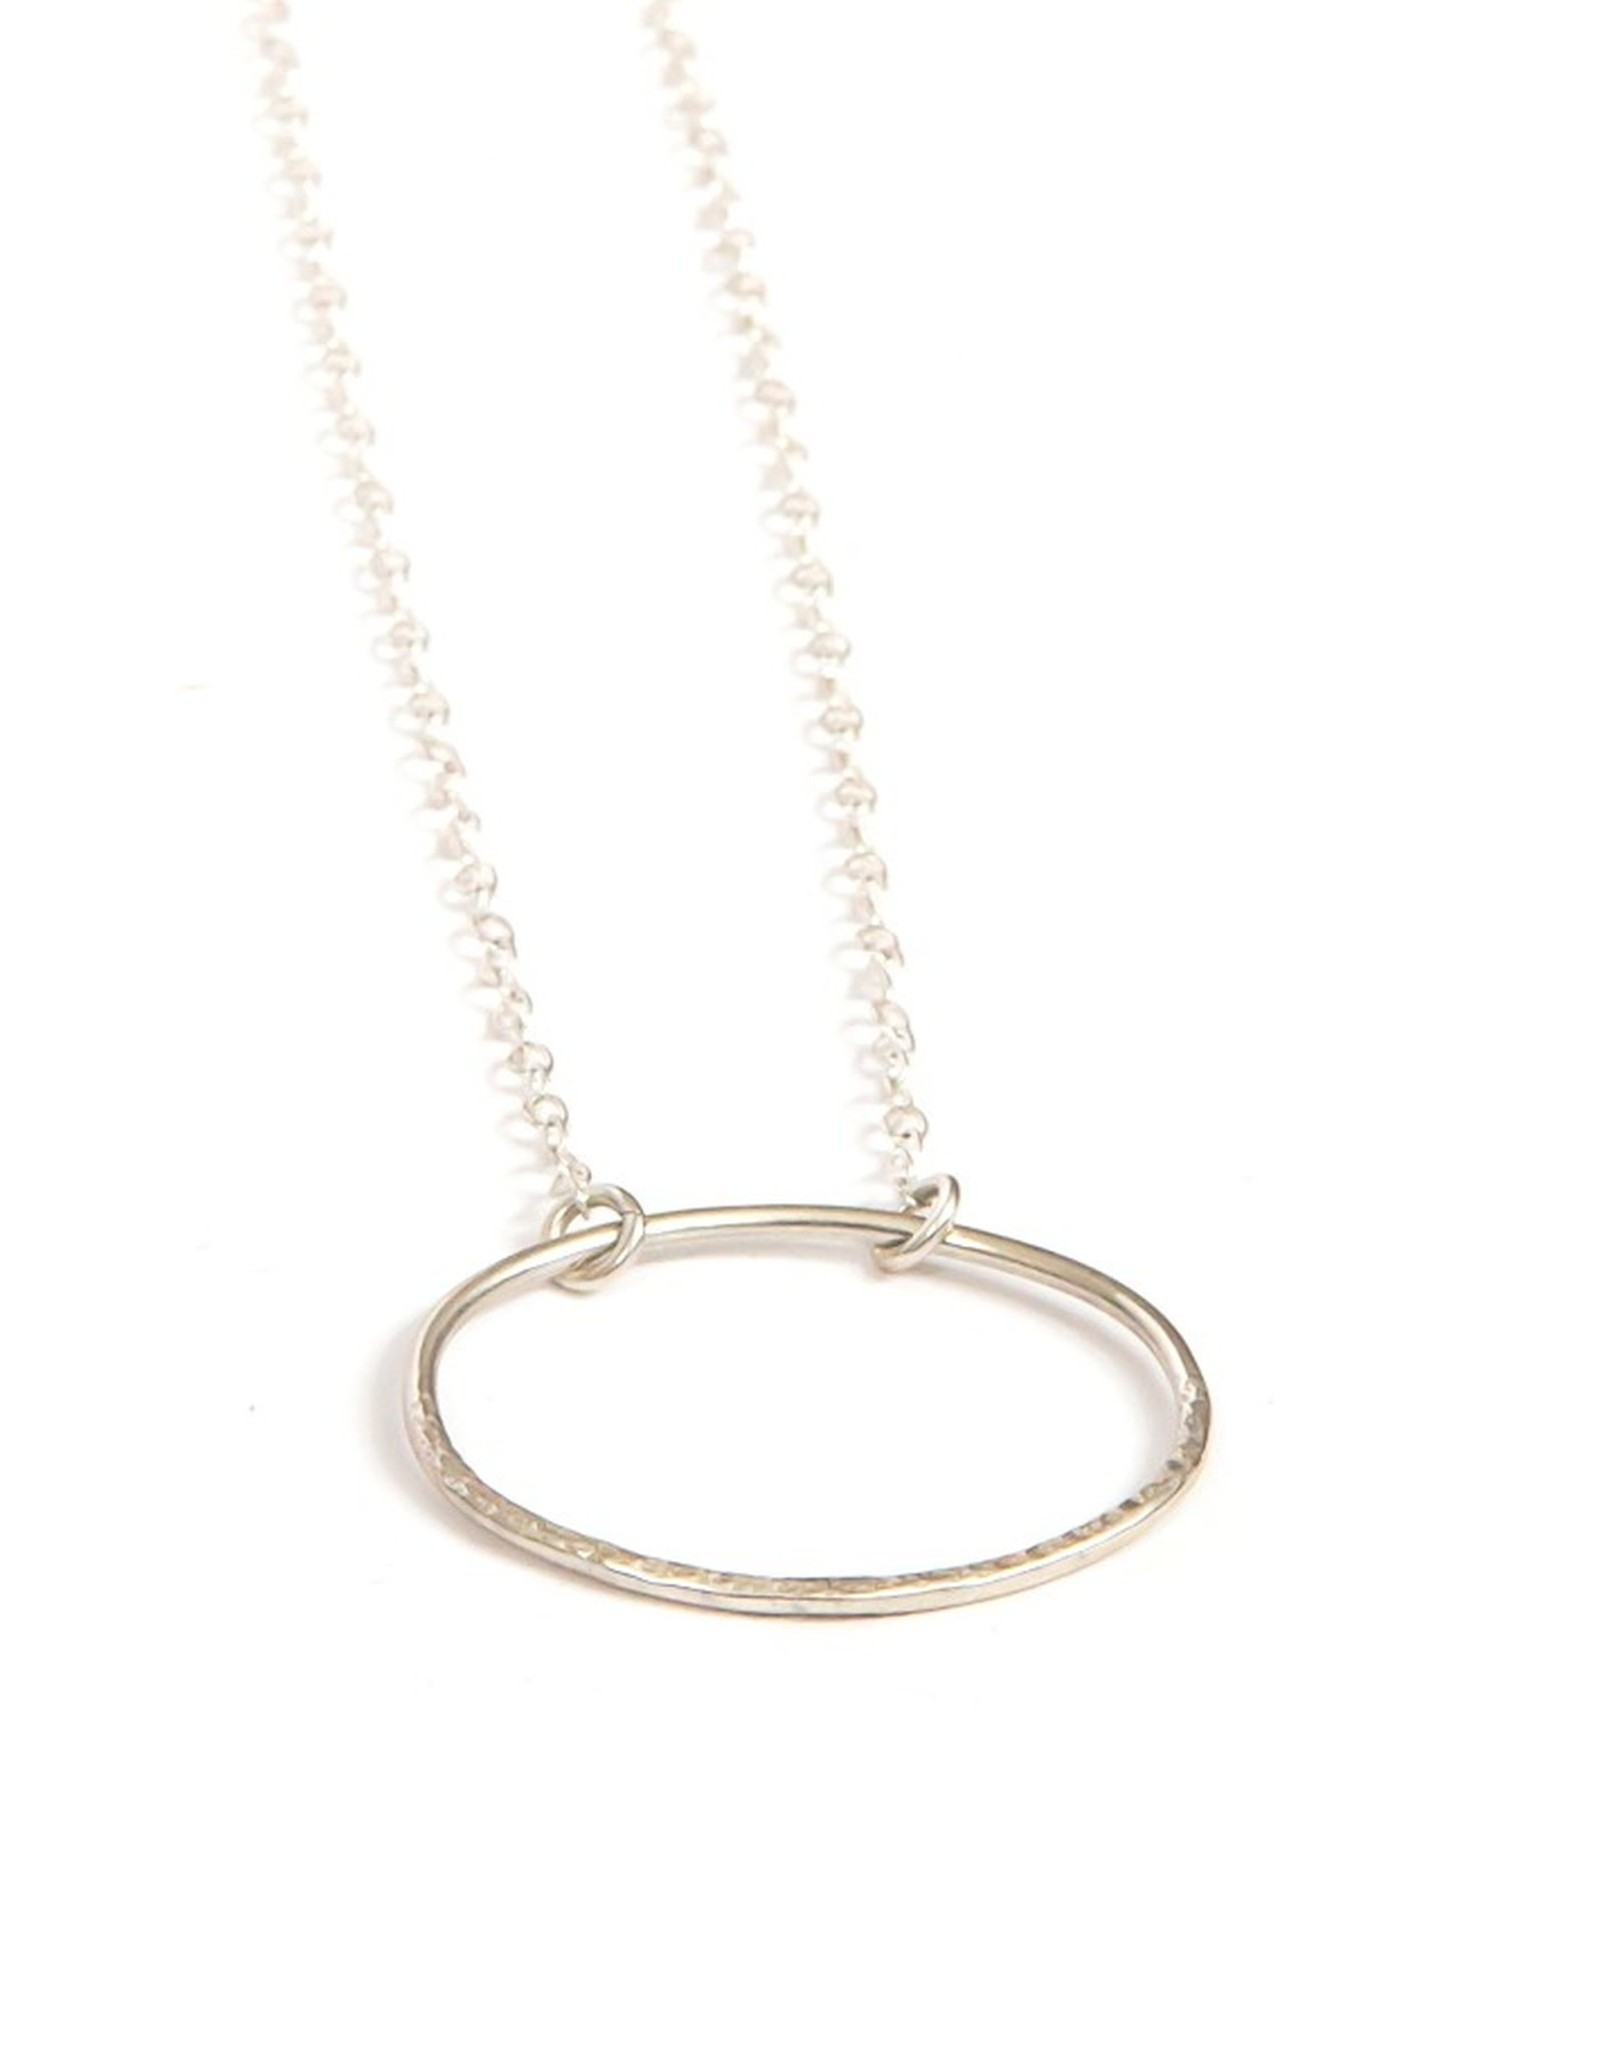 Fair Anita Oval Simplicity Sterling Silver Necklace, Peru